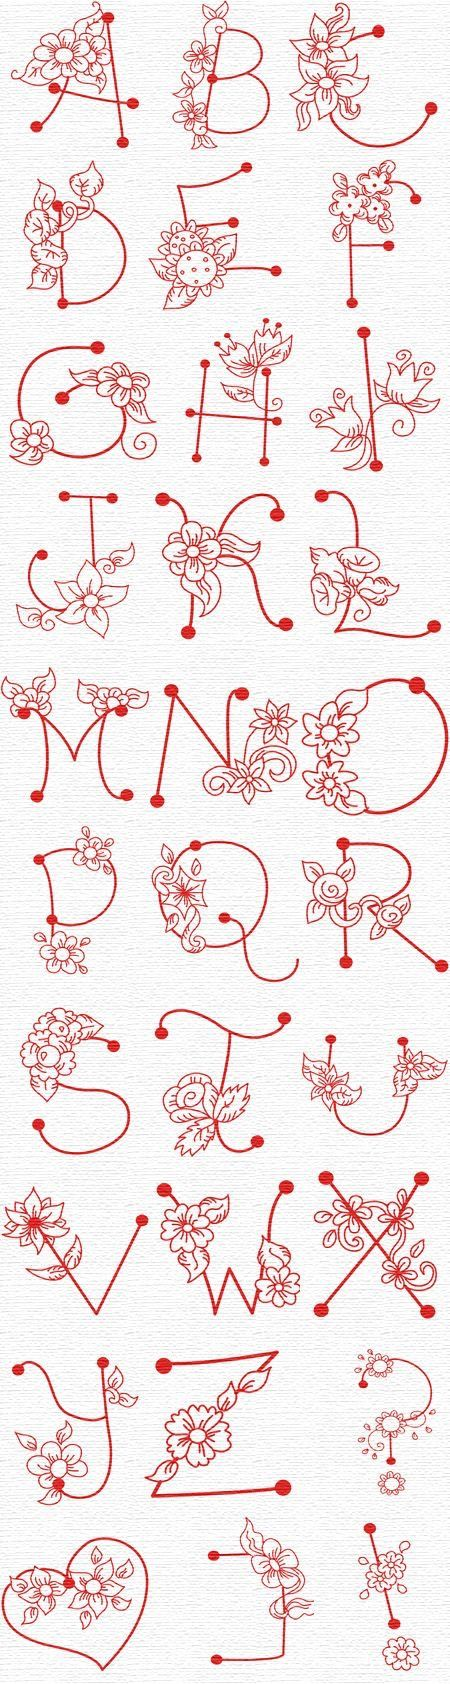 Pin By Shannon Lucas On Drawing Pinterest Fonts Bullet And